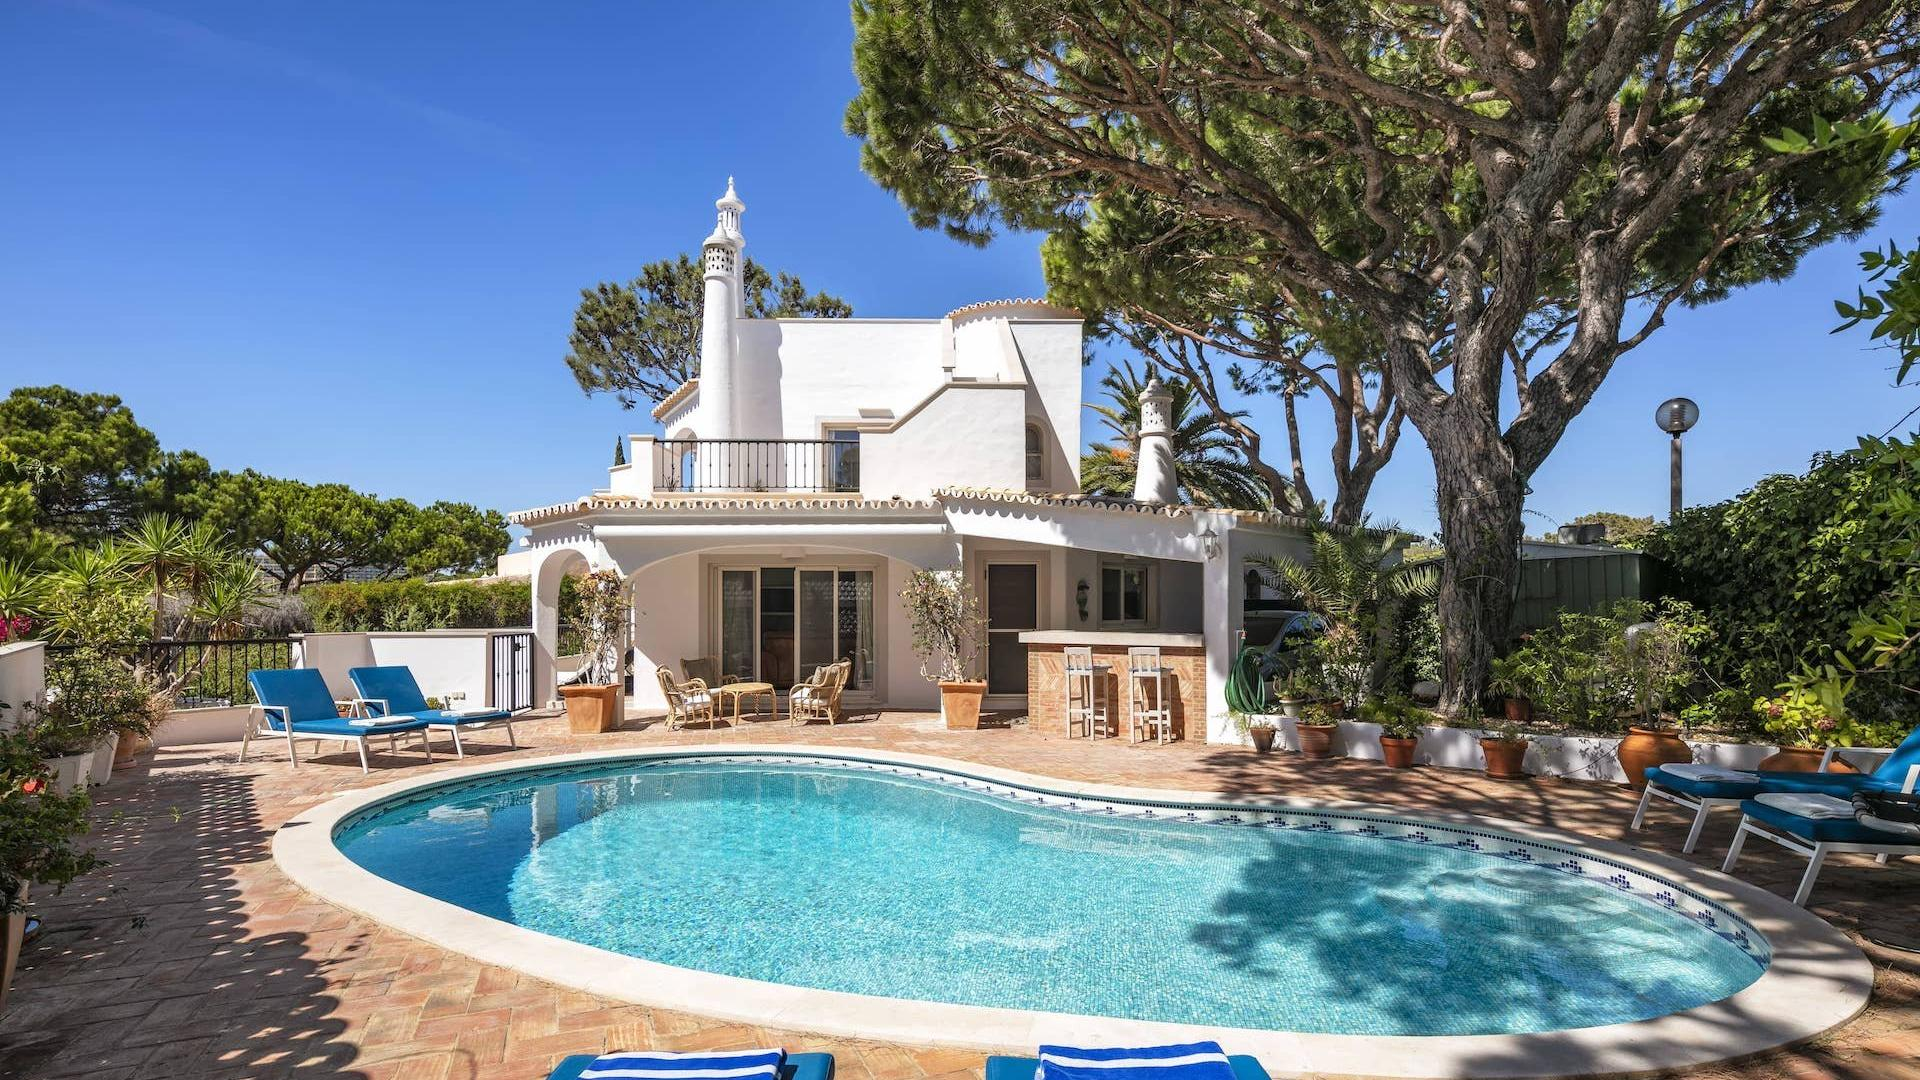 Villa Espada - Vale do Garrão, Vale do Lobo, Algarve - BACK_VIEW_OF_VILLA.jpg